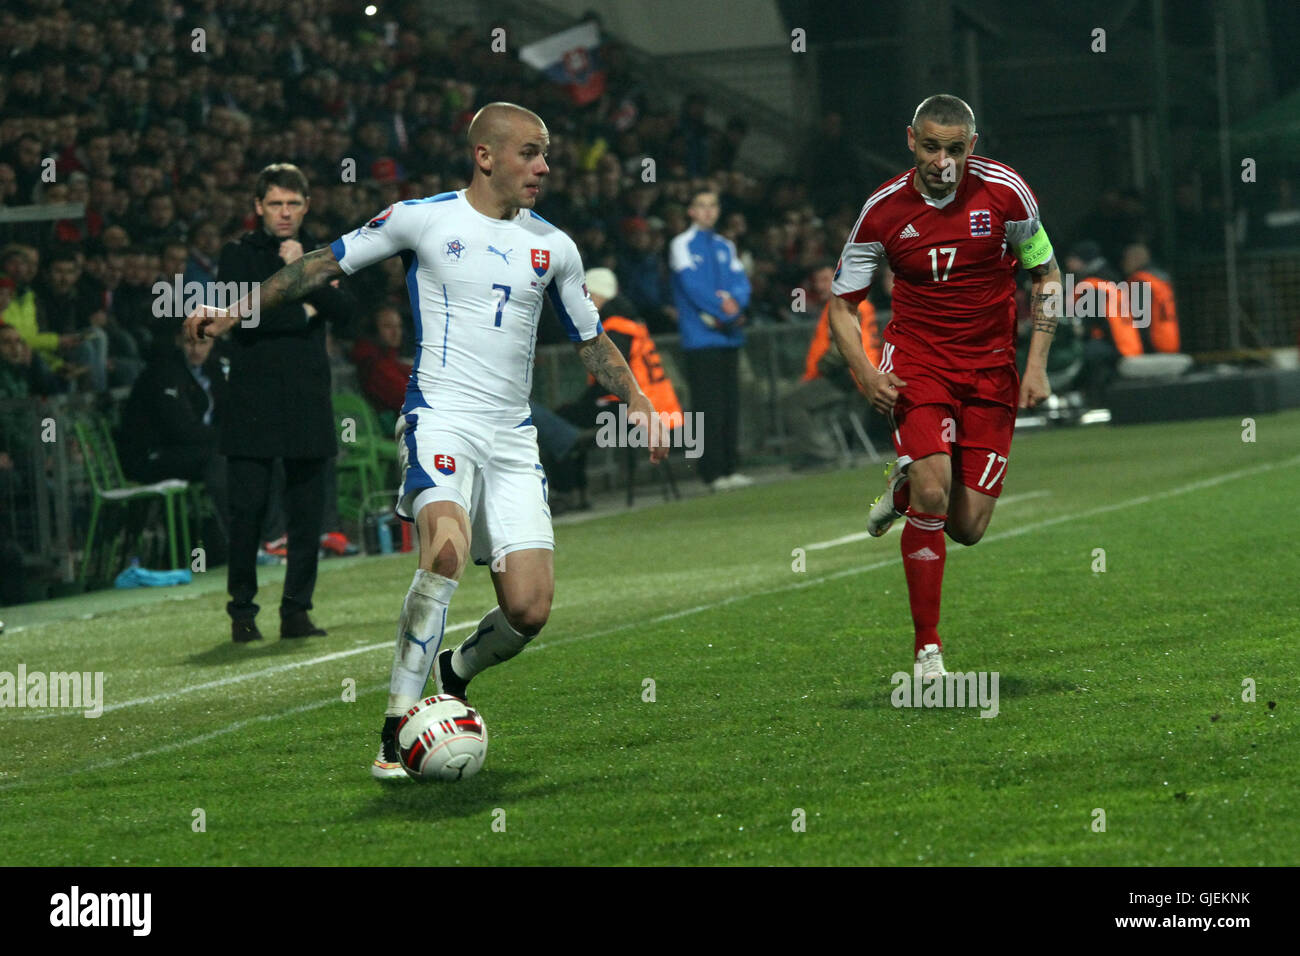 Vladimir Weiss (7) and Mario Mutsch (17) during the EURO 2016 qualifier Slovakia vs Luxembourg 3-0. - Stock Image